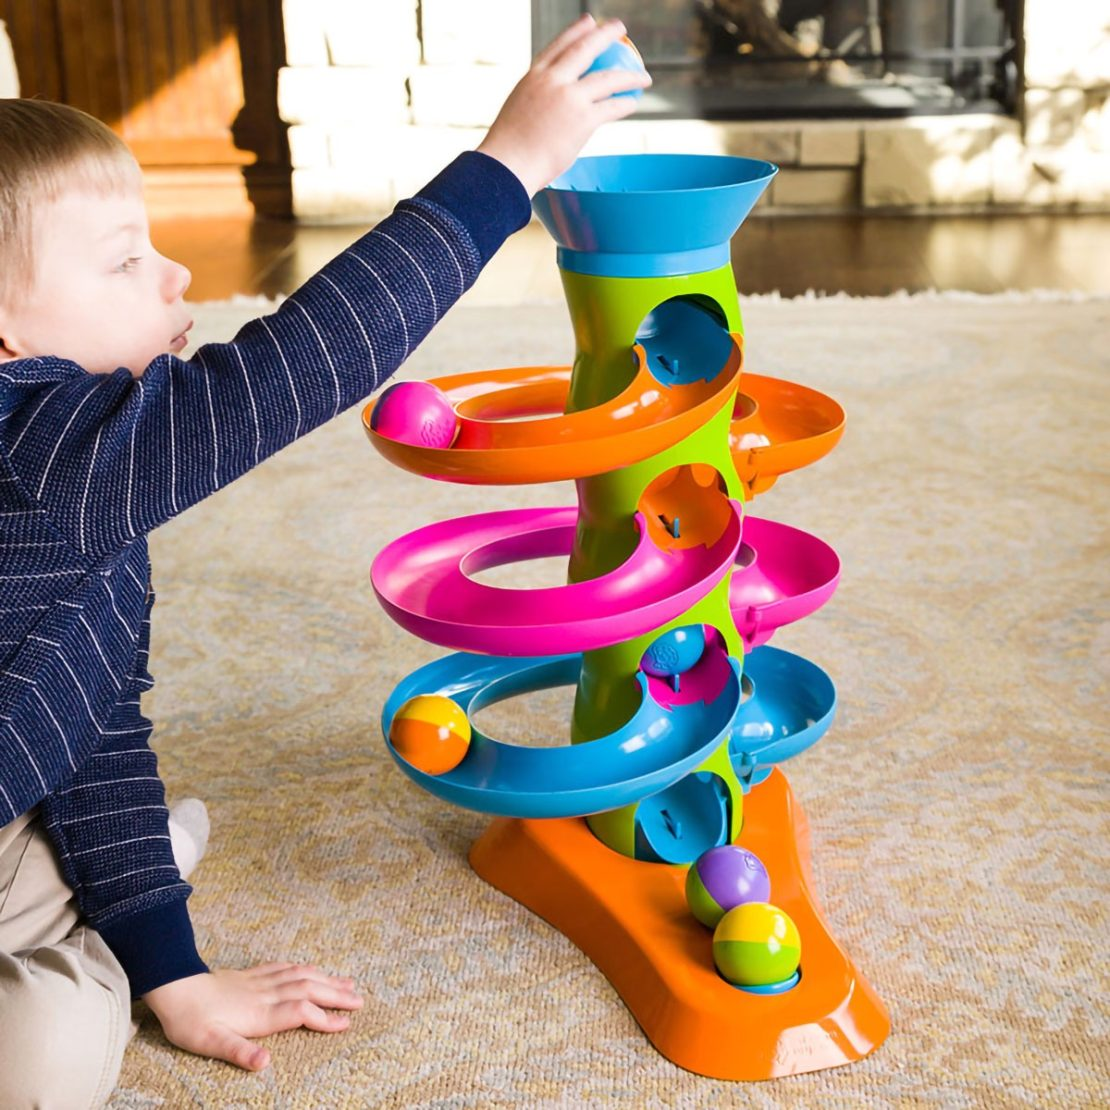 Roll Again Tower Fat Brain Toddler Toy